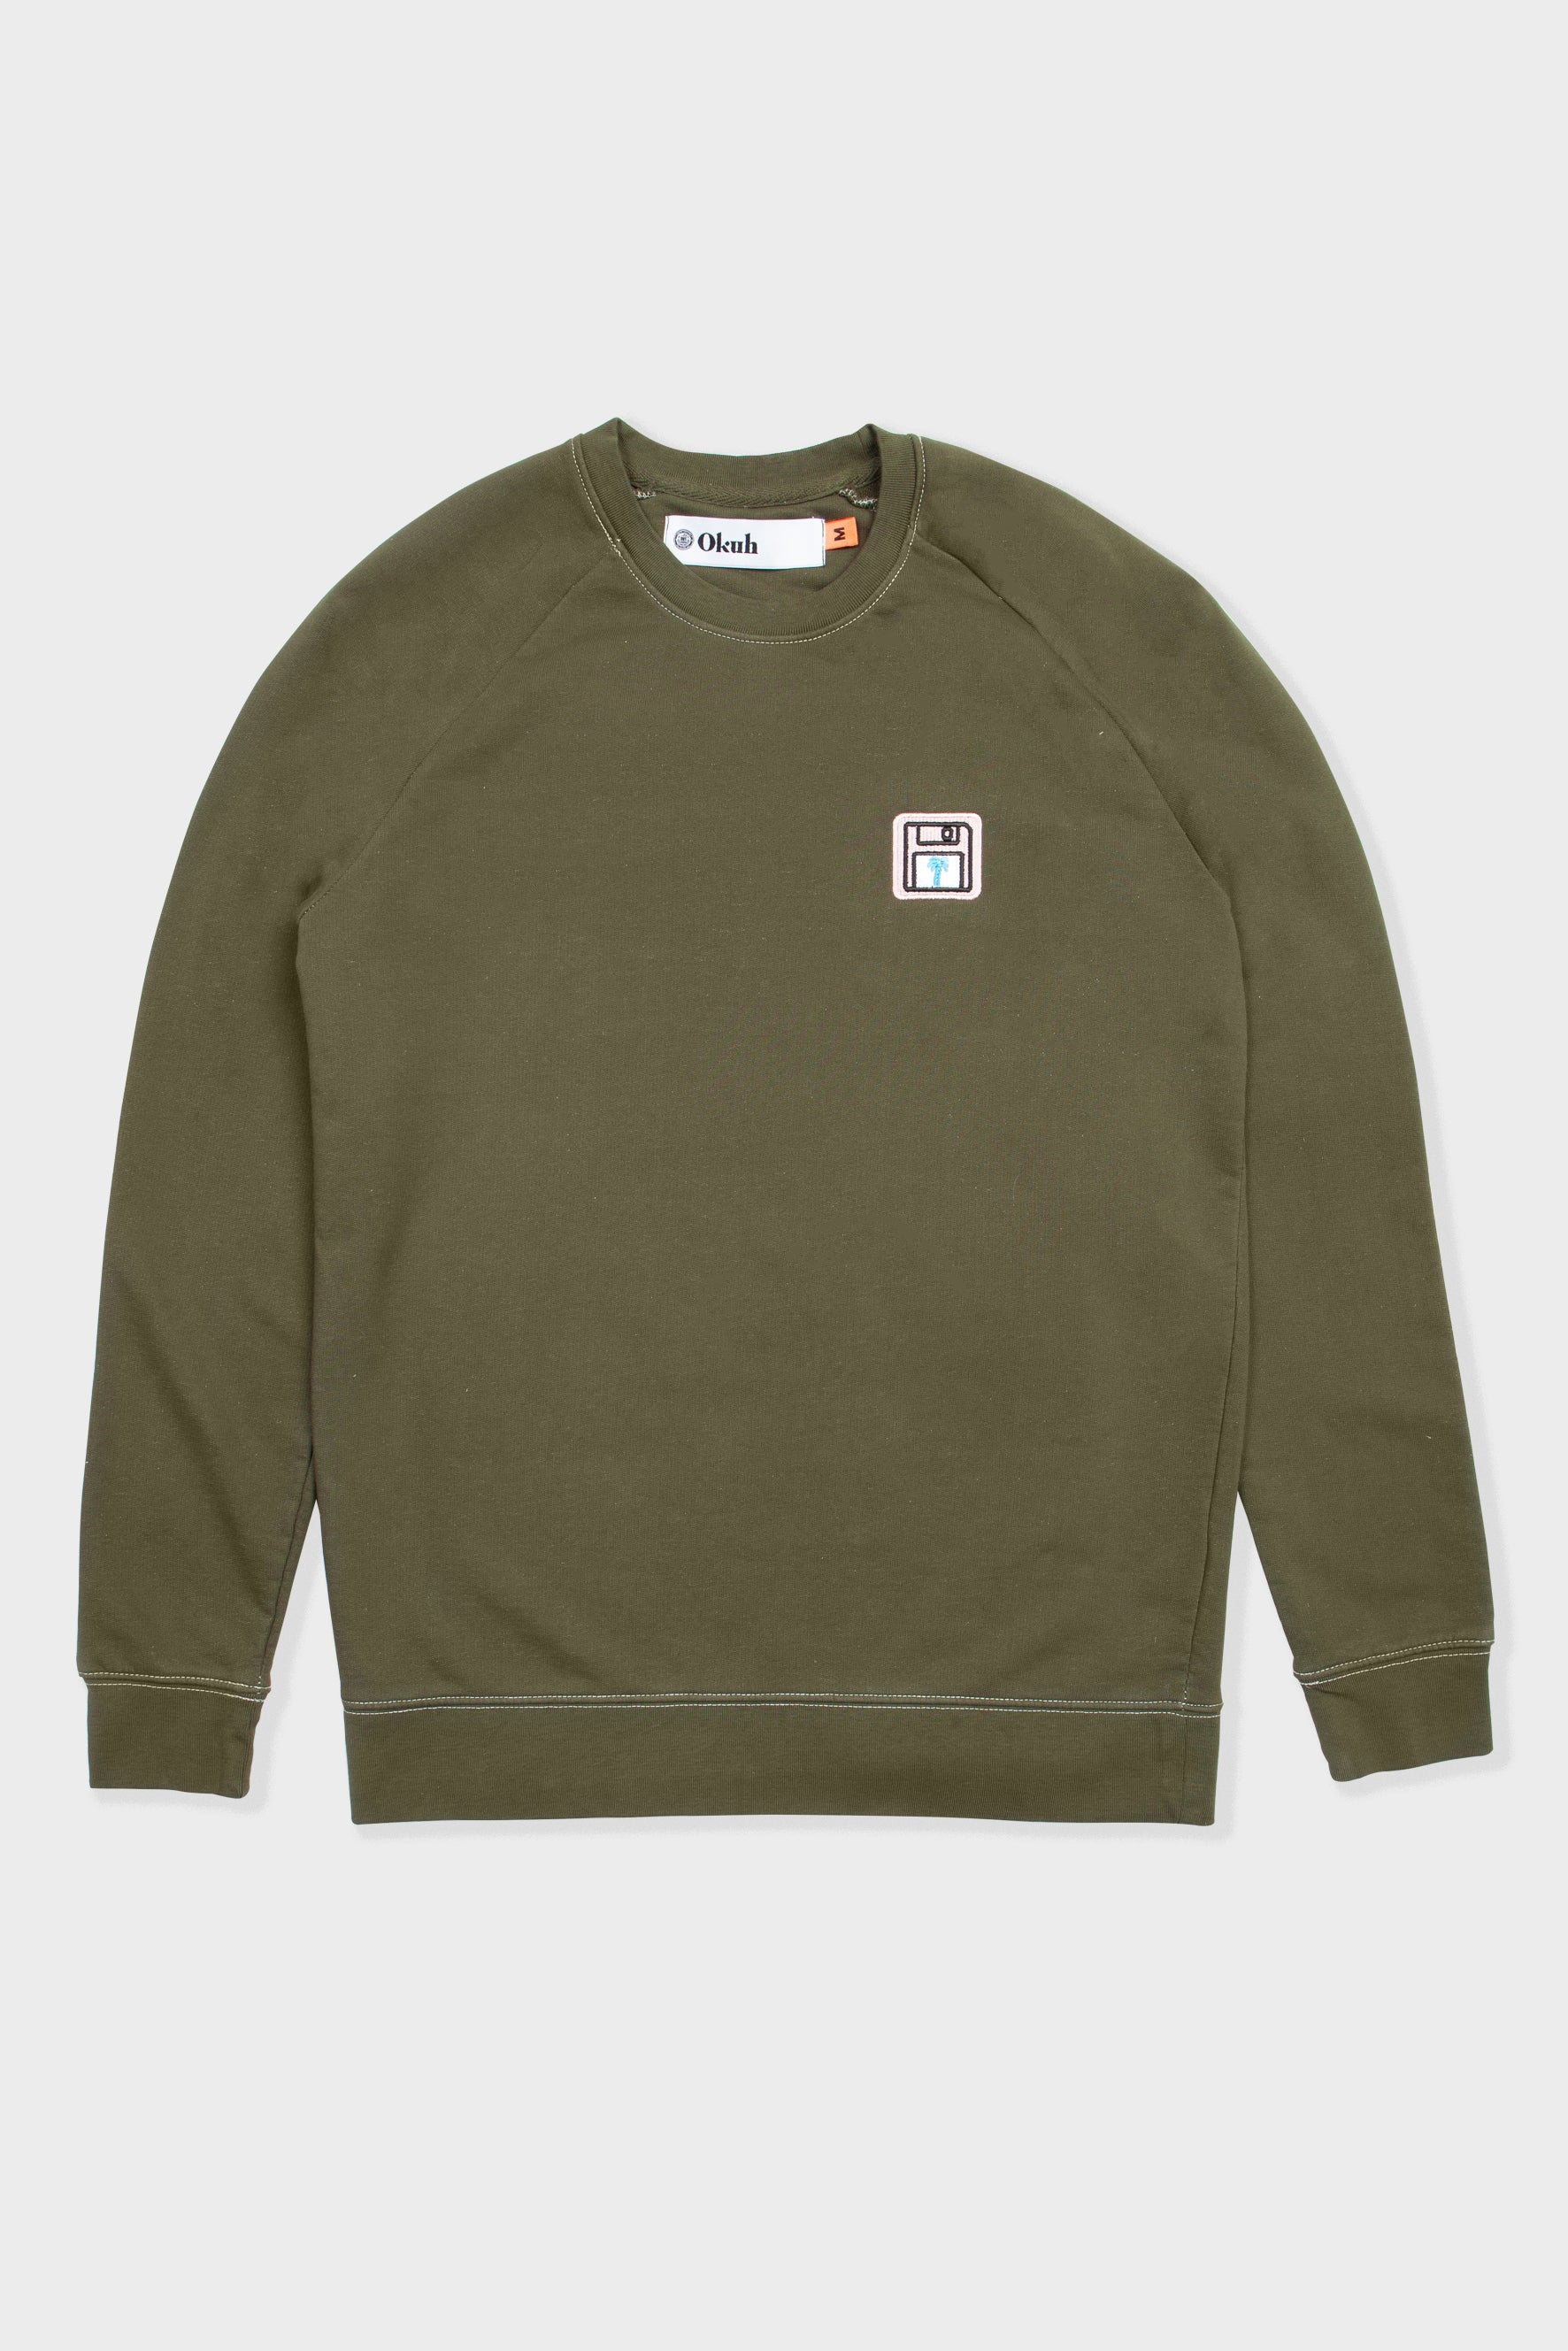 Back Up Disk - Washed Khaki Embroidered Sweatshirt - okuhstudios